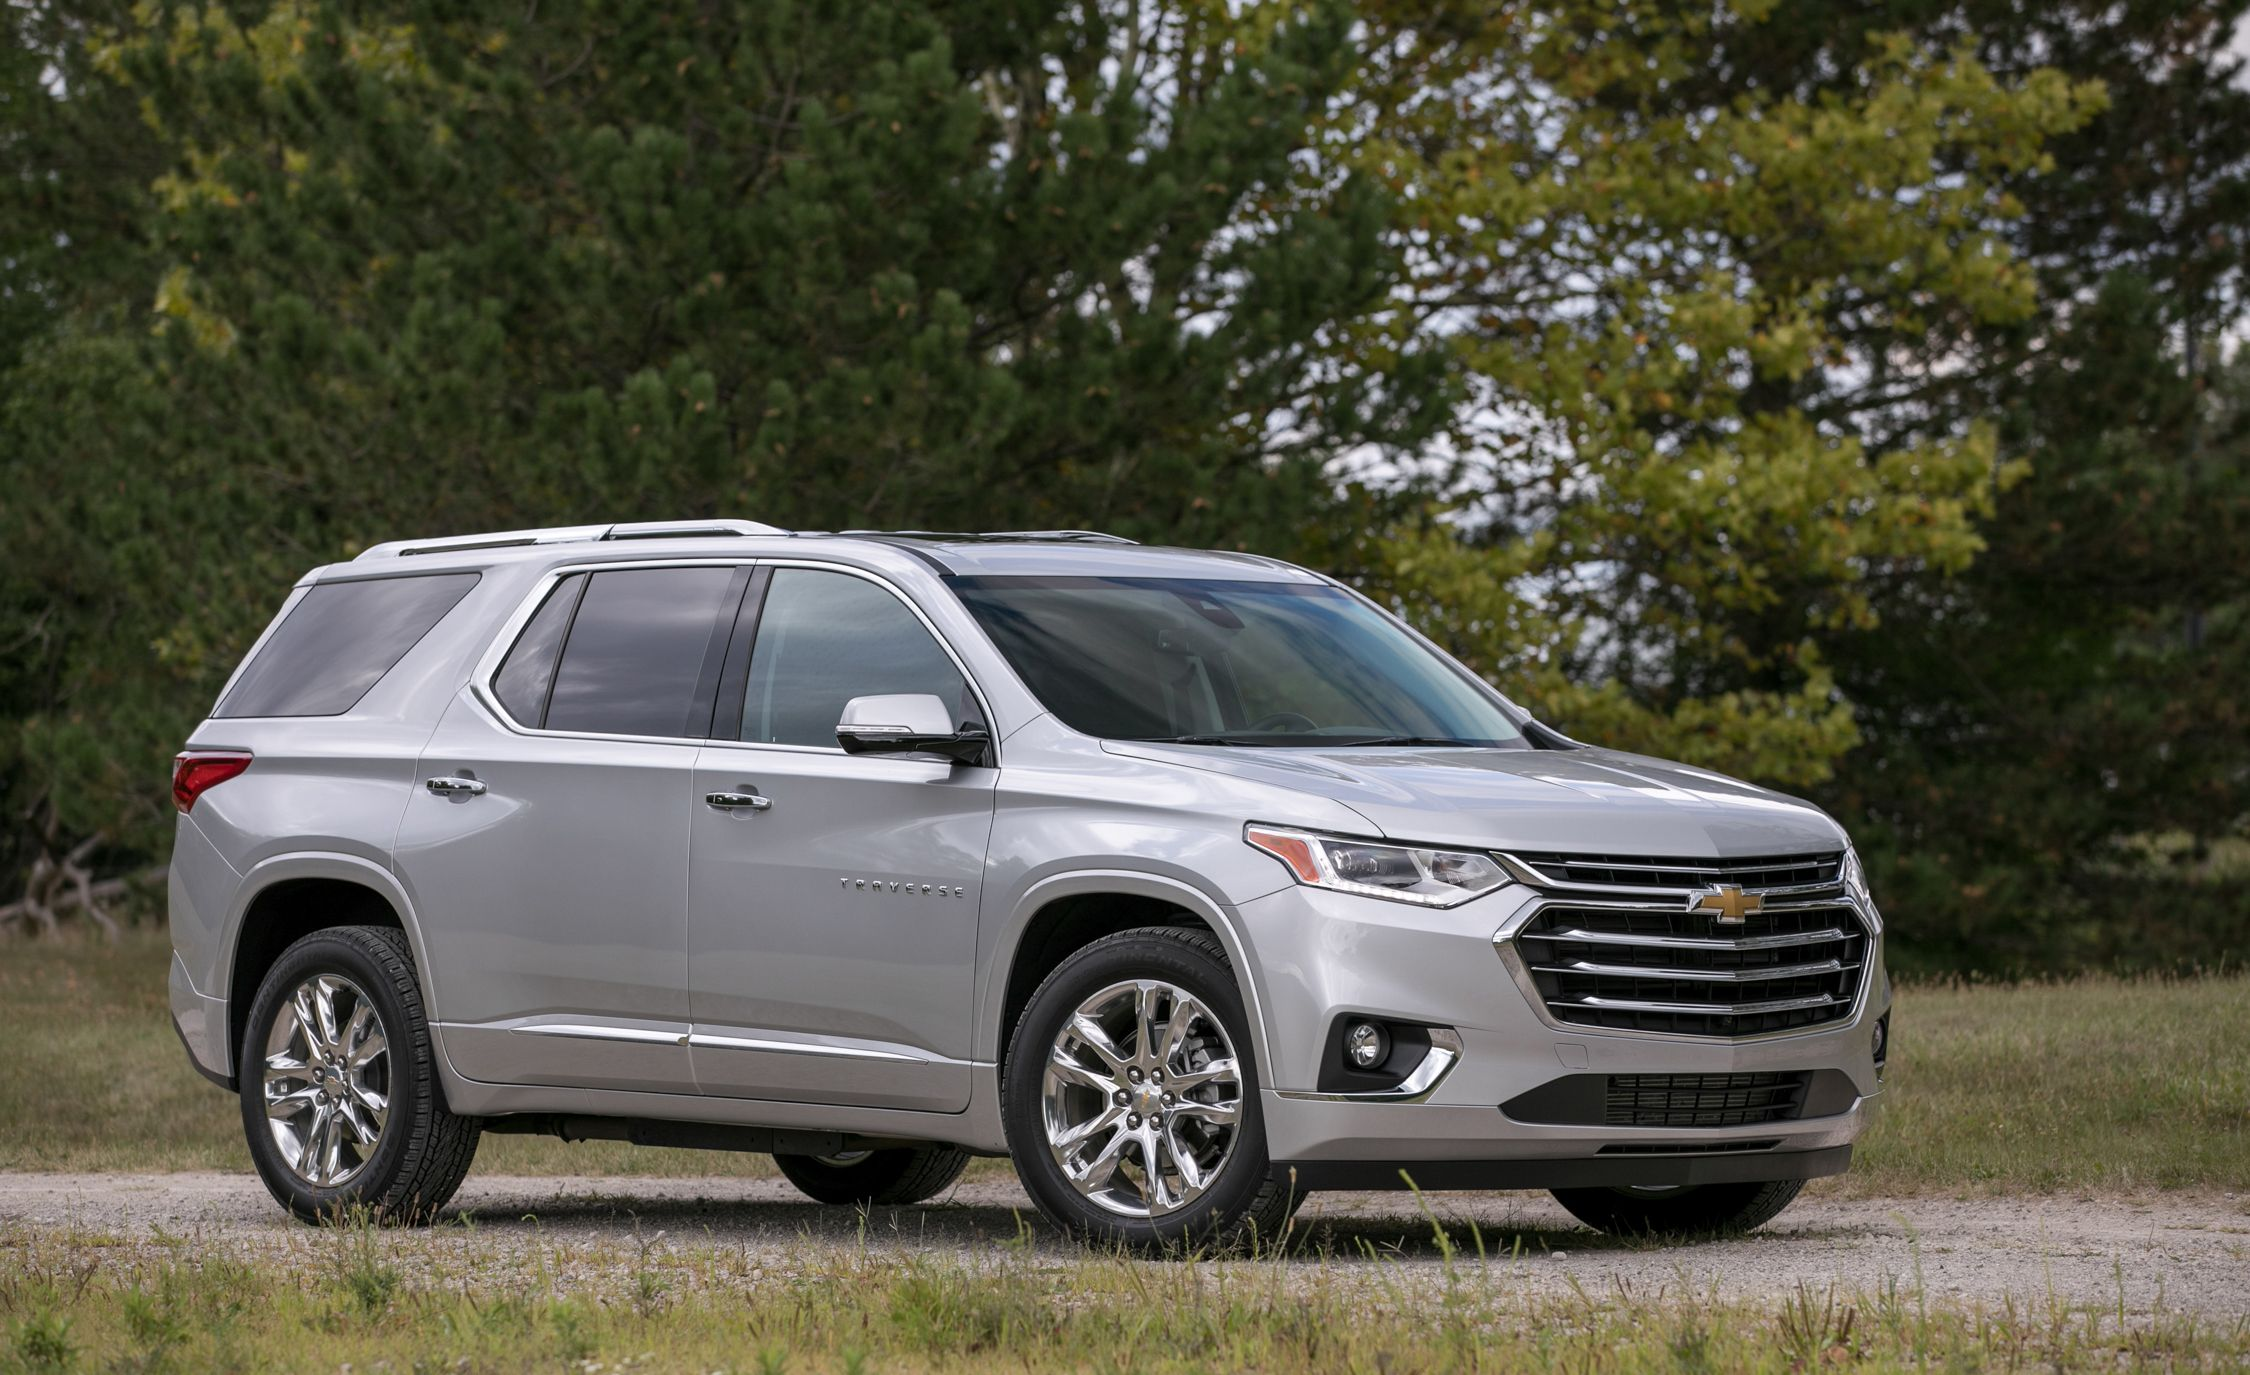 2018 Chevrolet Traverse | Exterior Review | Car and Driver